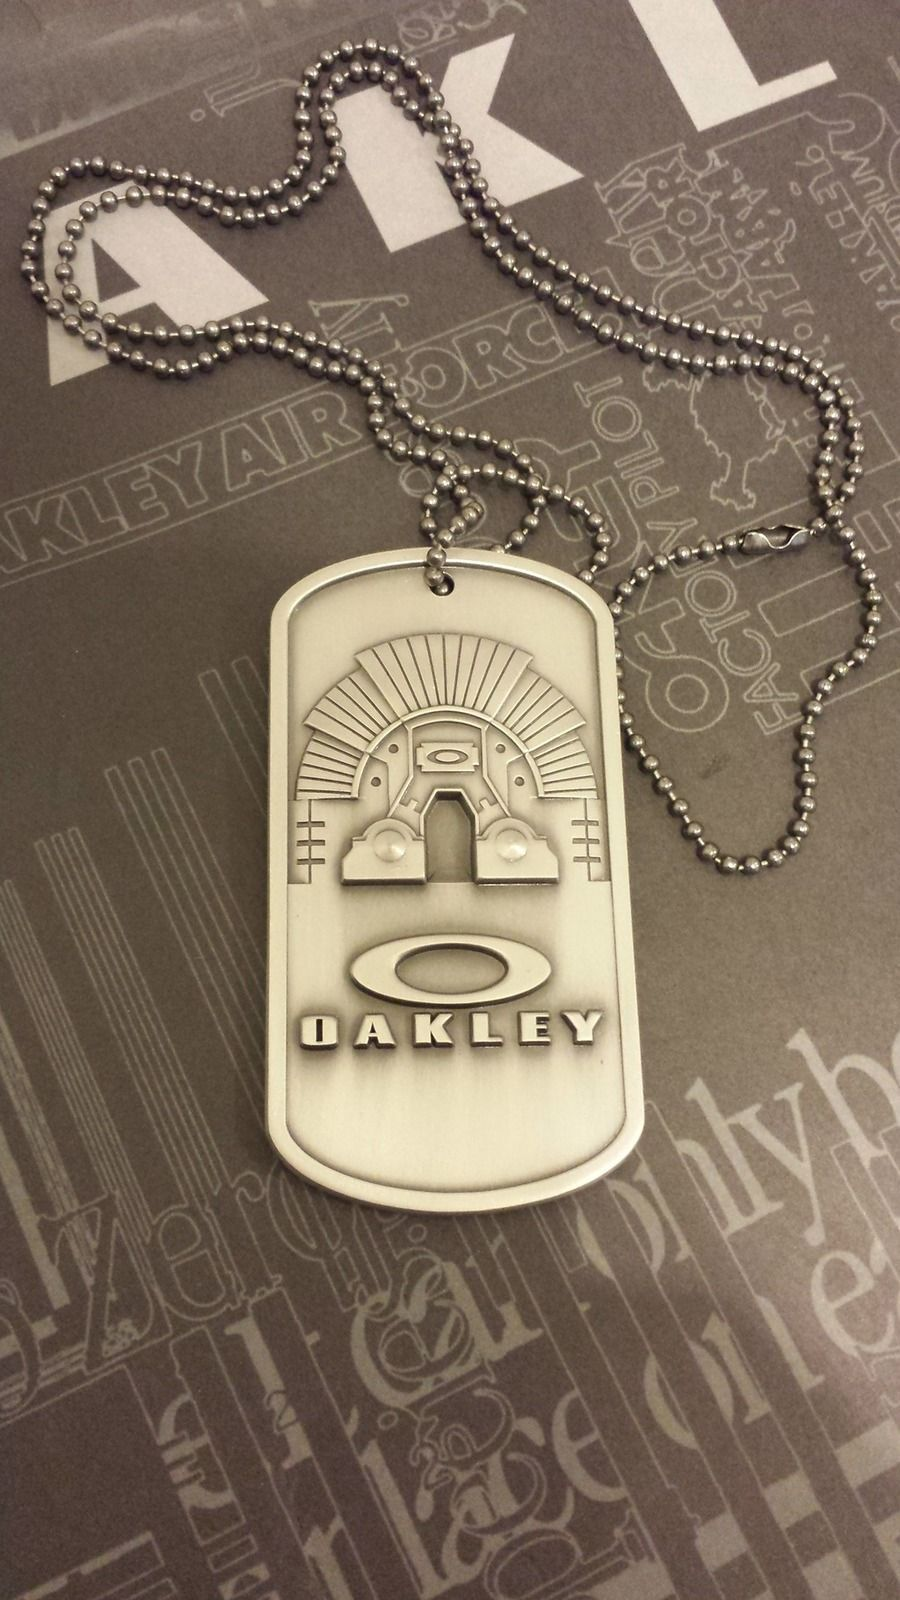 How rare are the Oakley dog tags - 20150519_192539_zps7flinwar.jpg